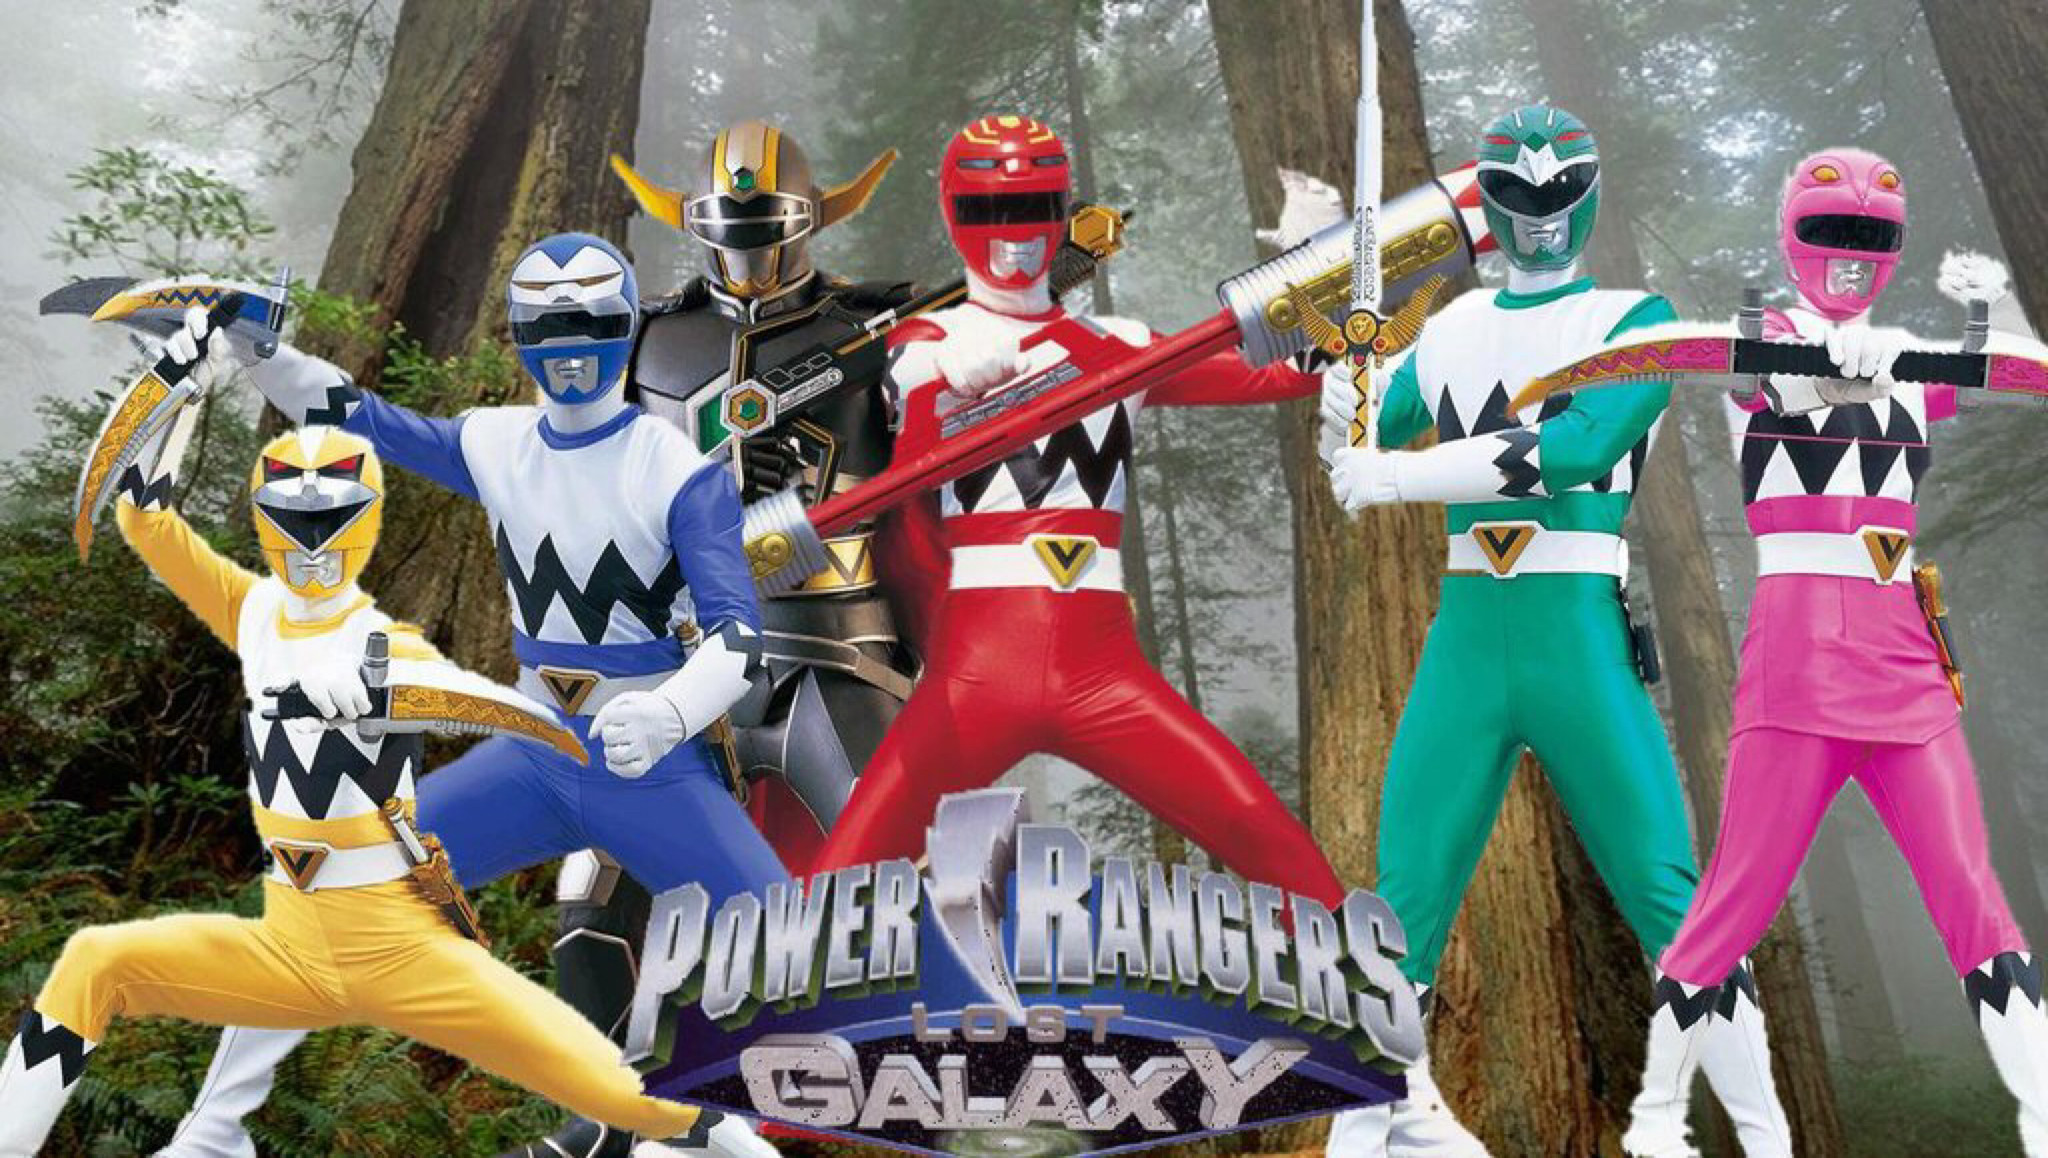 Arsenal (Weapons – Gear) – Power Rangers Lost Galaxy   Power Rangers  Central   It's Morphin Time   Pinterest   Power rangers lost galaxy, Power  rangers dino …